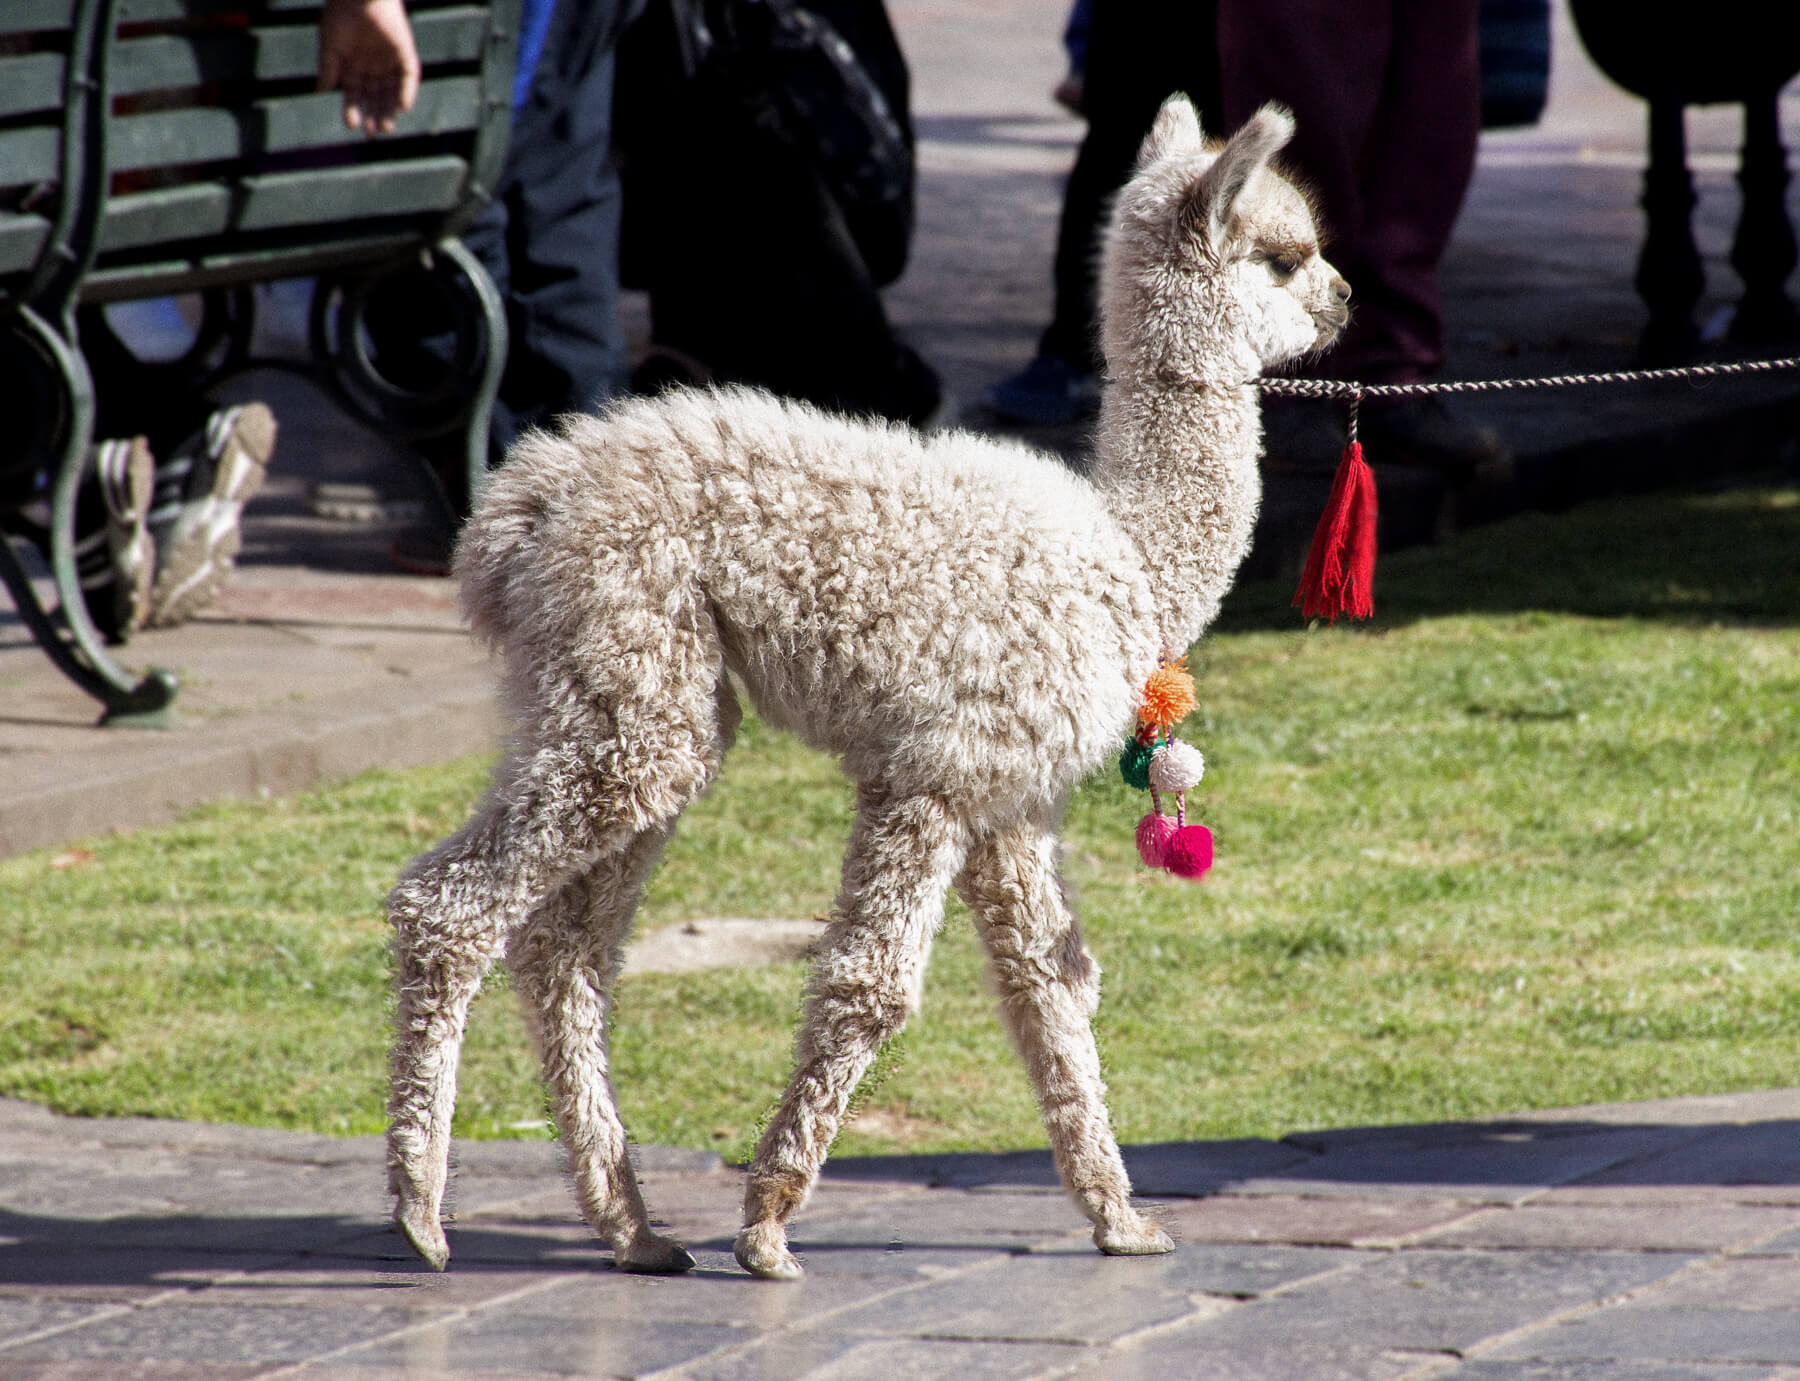 A white alpaca being walked through the streets via a chain and coloured pompoms